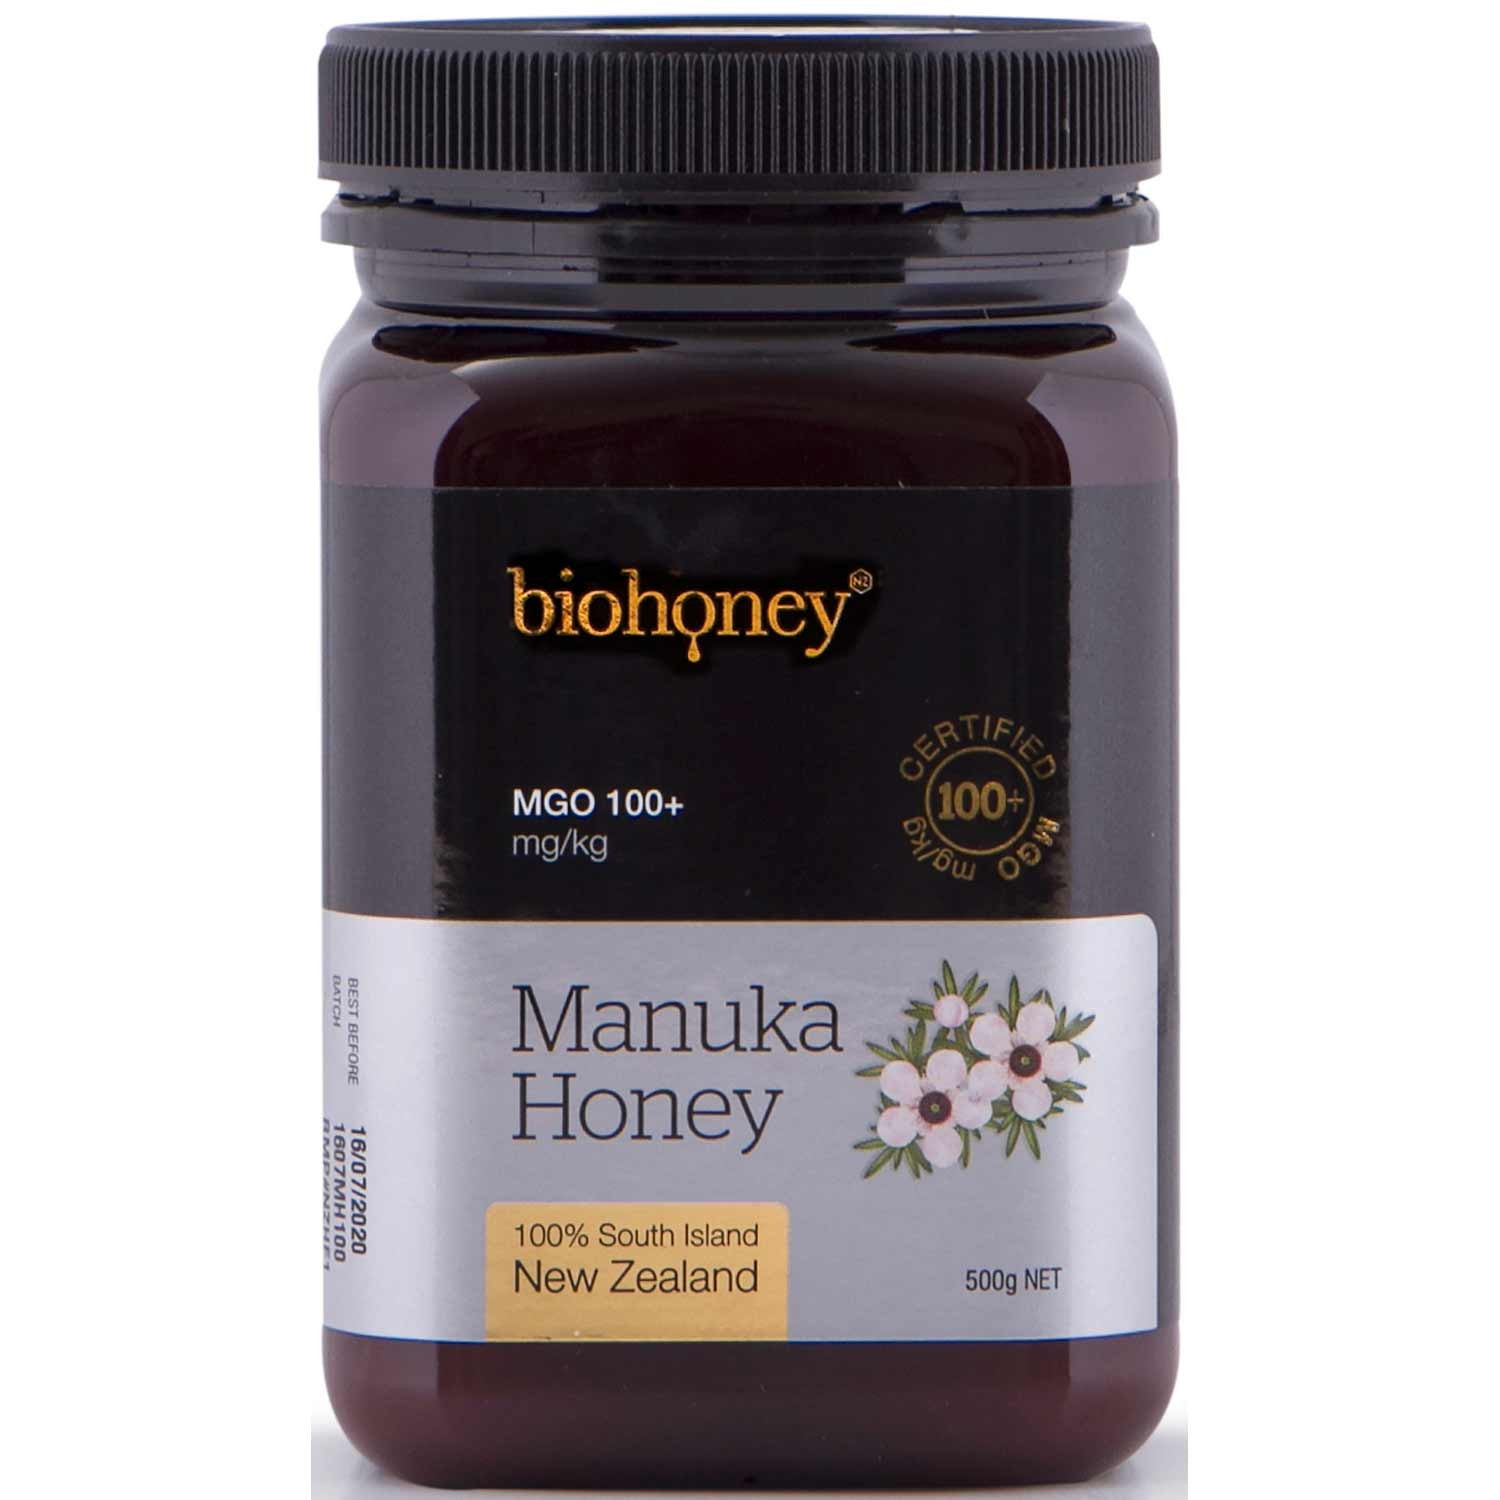 BioHoney Manuka Honey 100+ MGO, 500g-NaturesWisdom